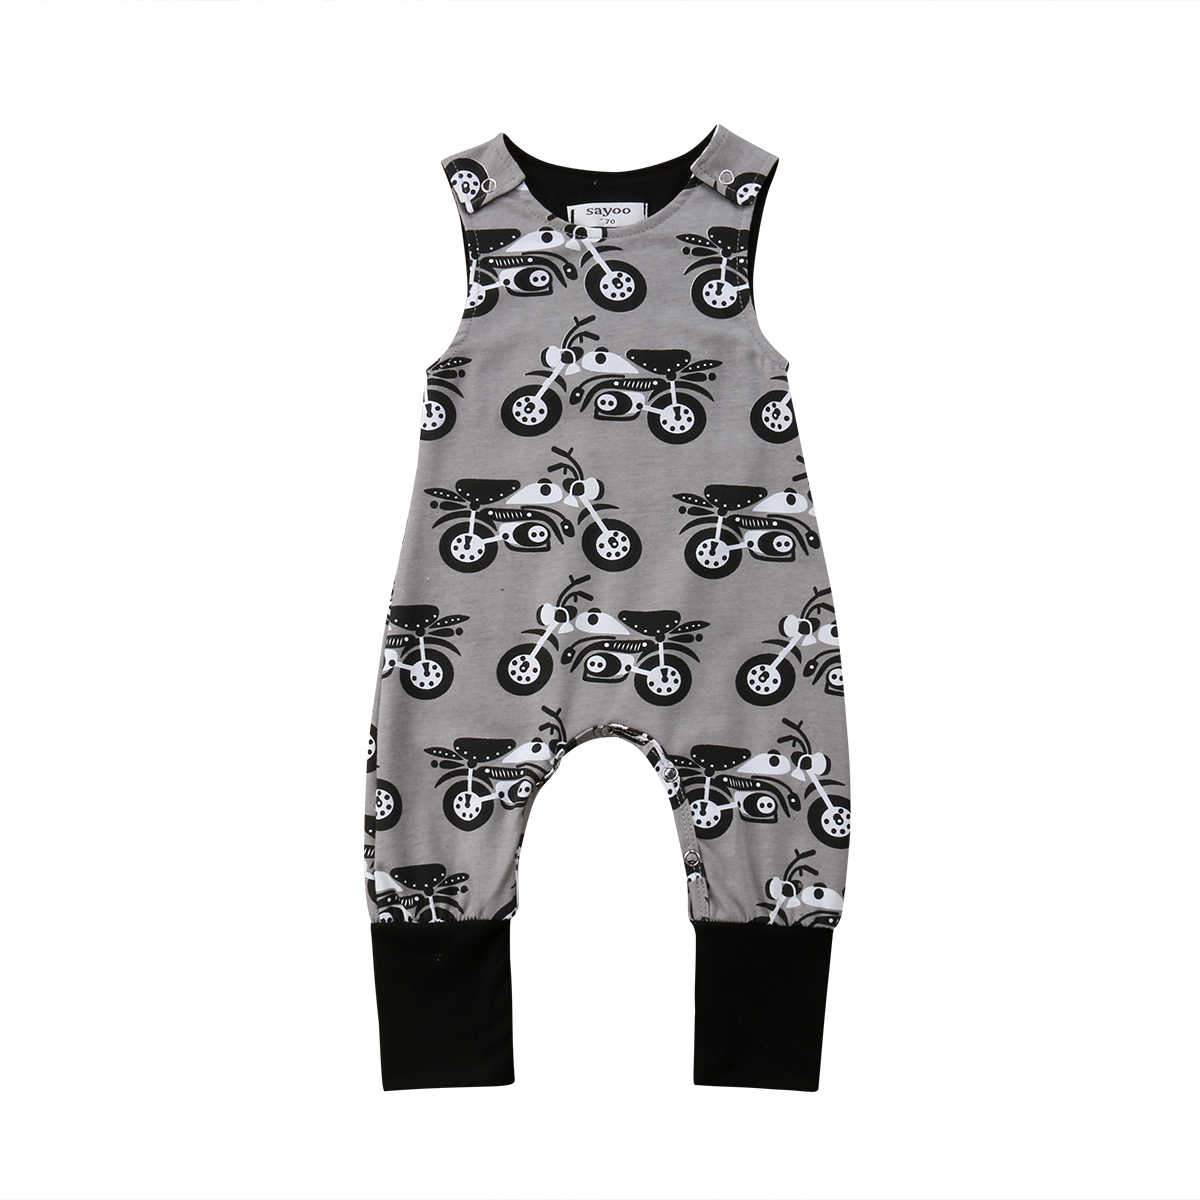 a1b219eb0b8 Baby Boy Kids Newborn Infant Motorcycle Print Romper Sleeveless Jumpsuit  Sunsuit Cotton Clothes Outfits